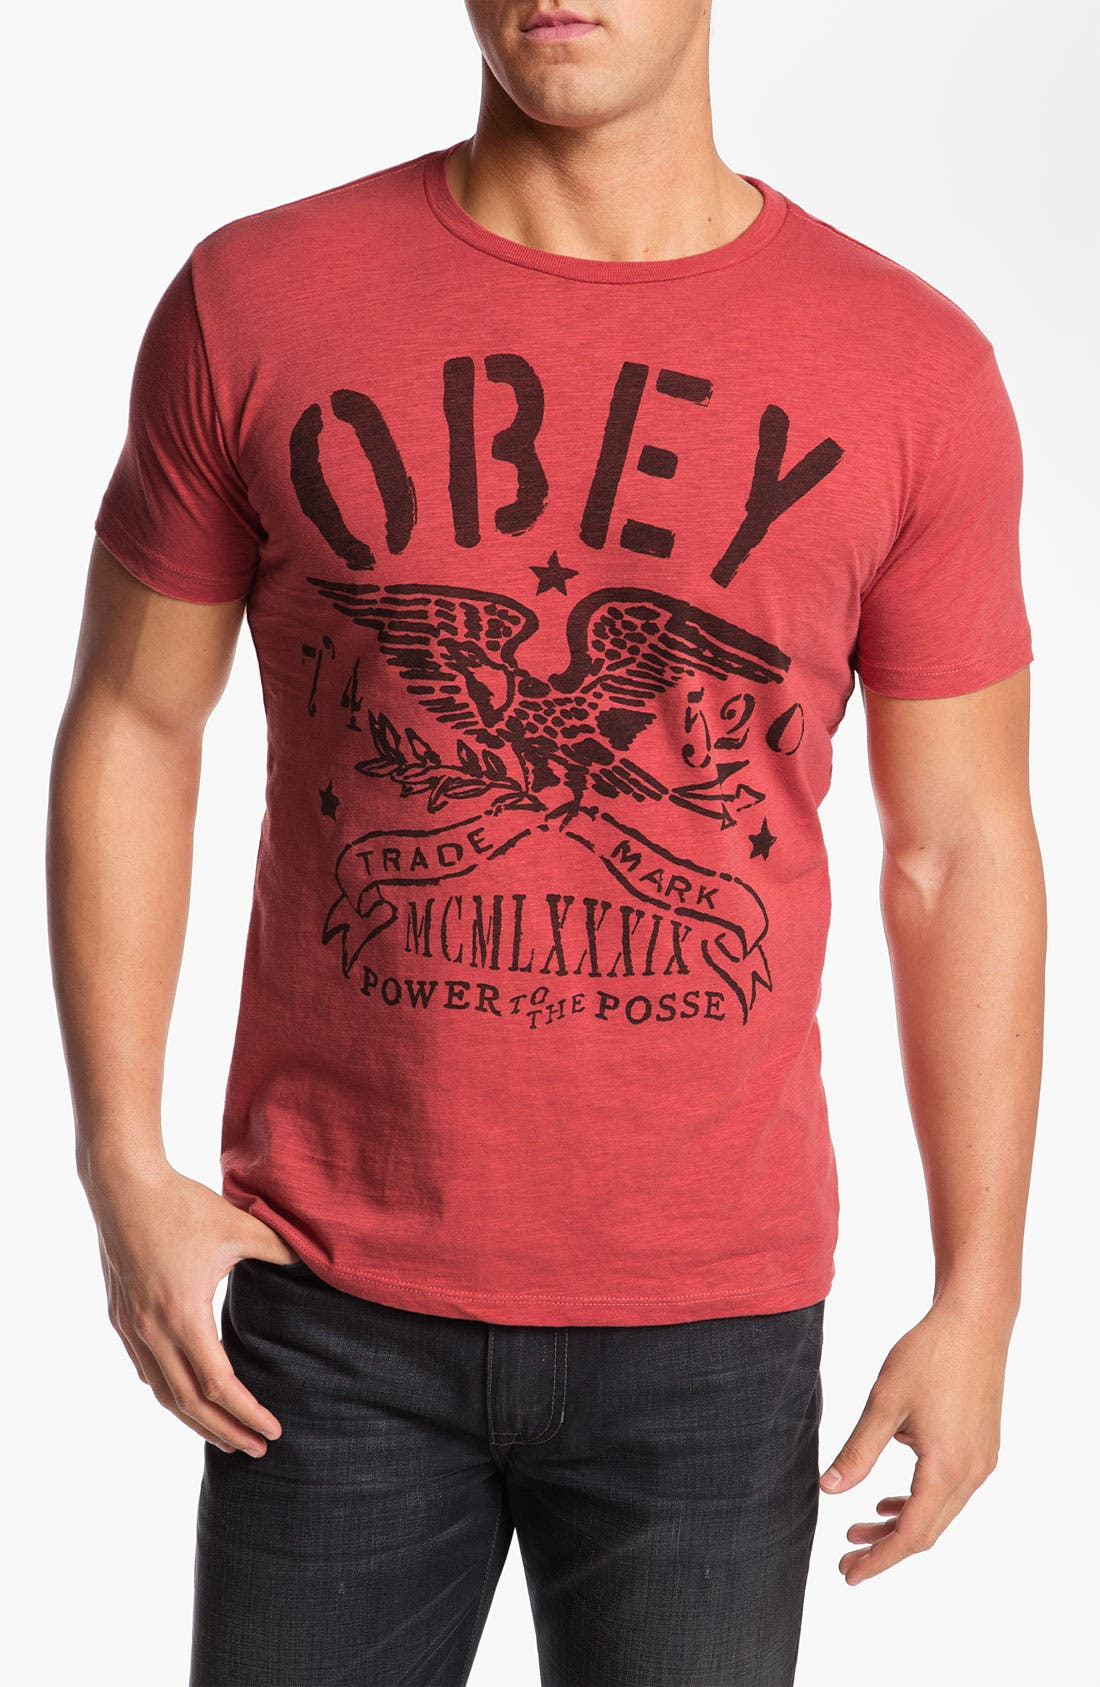 Main Image - Obey 'Trademark Eagle' T-Shirt